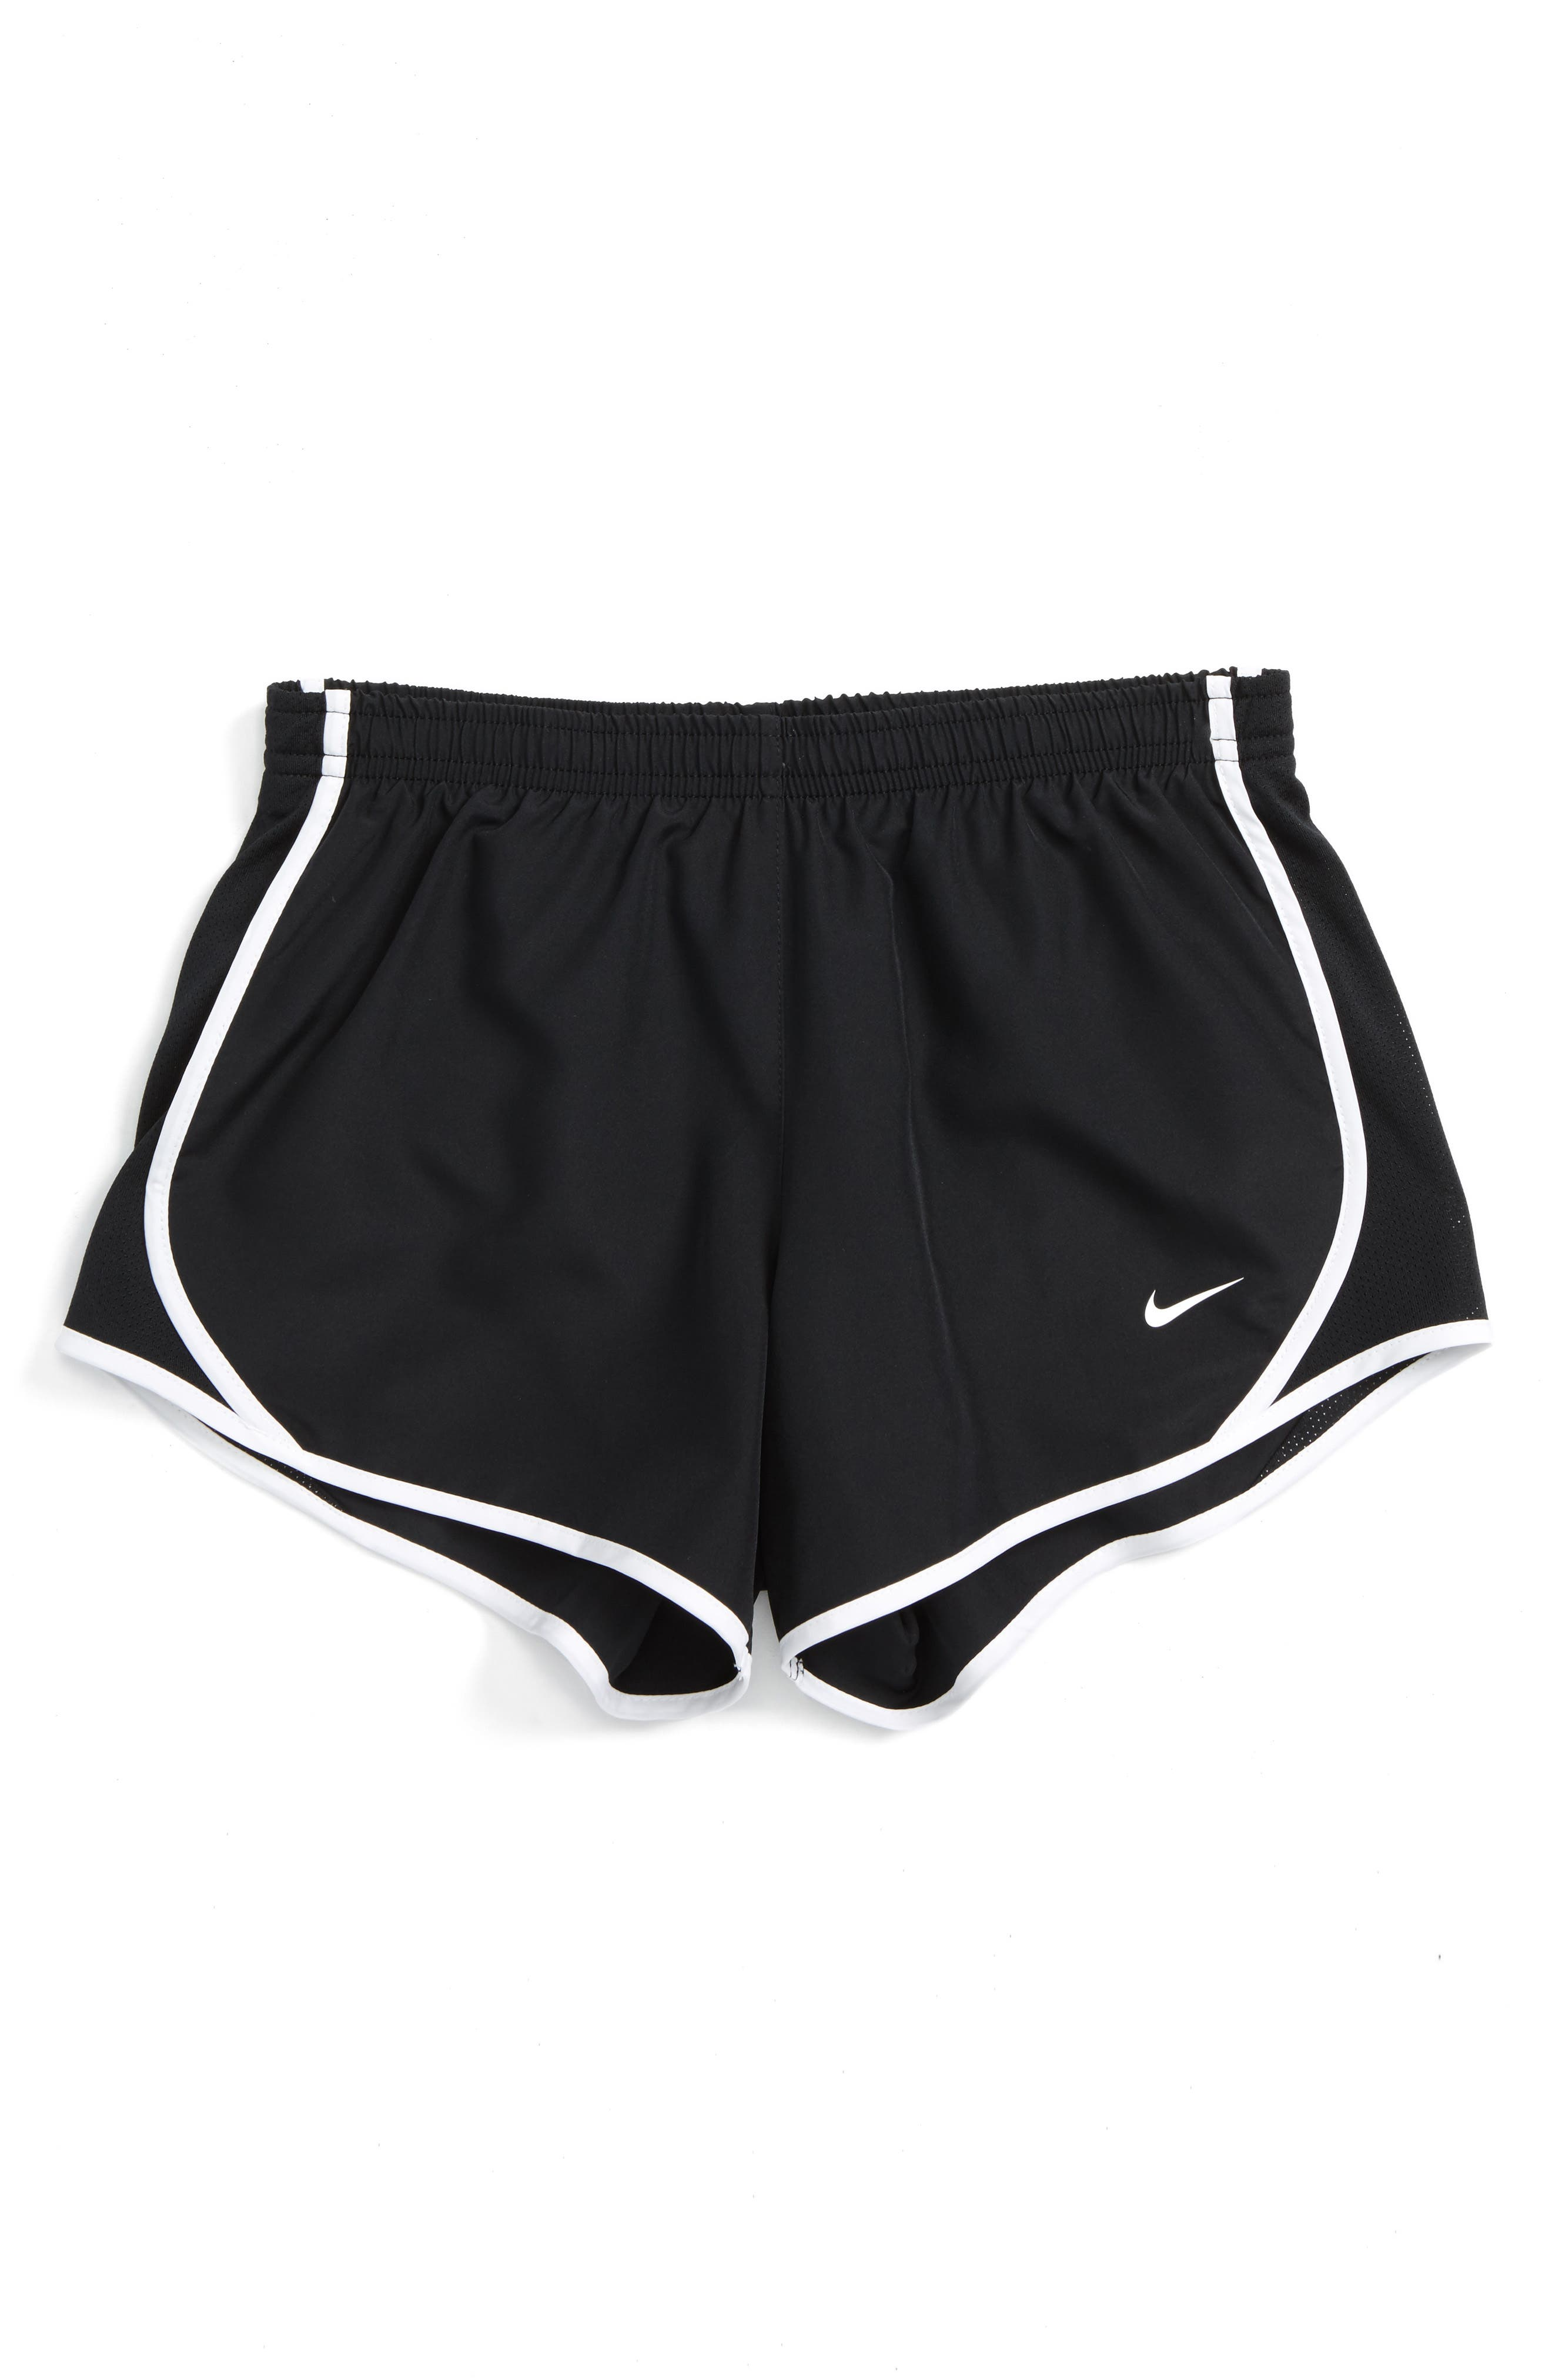 Dry Tempo Running Shorts,                         Main,                         color, BLACK/ WHITE